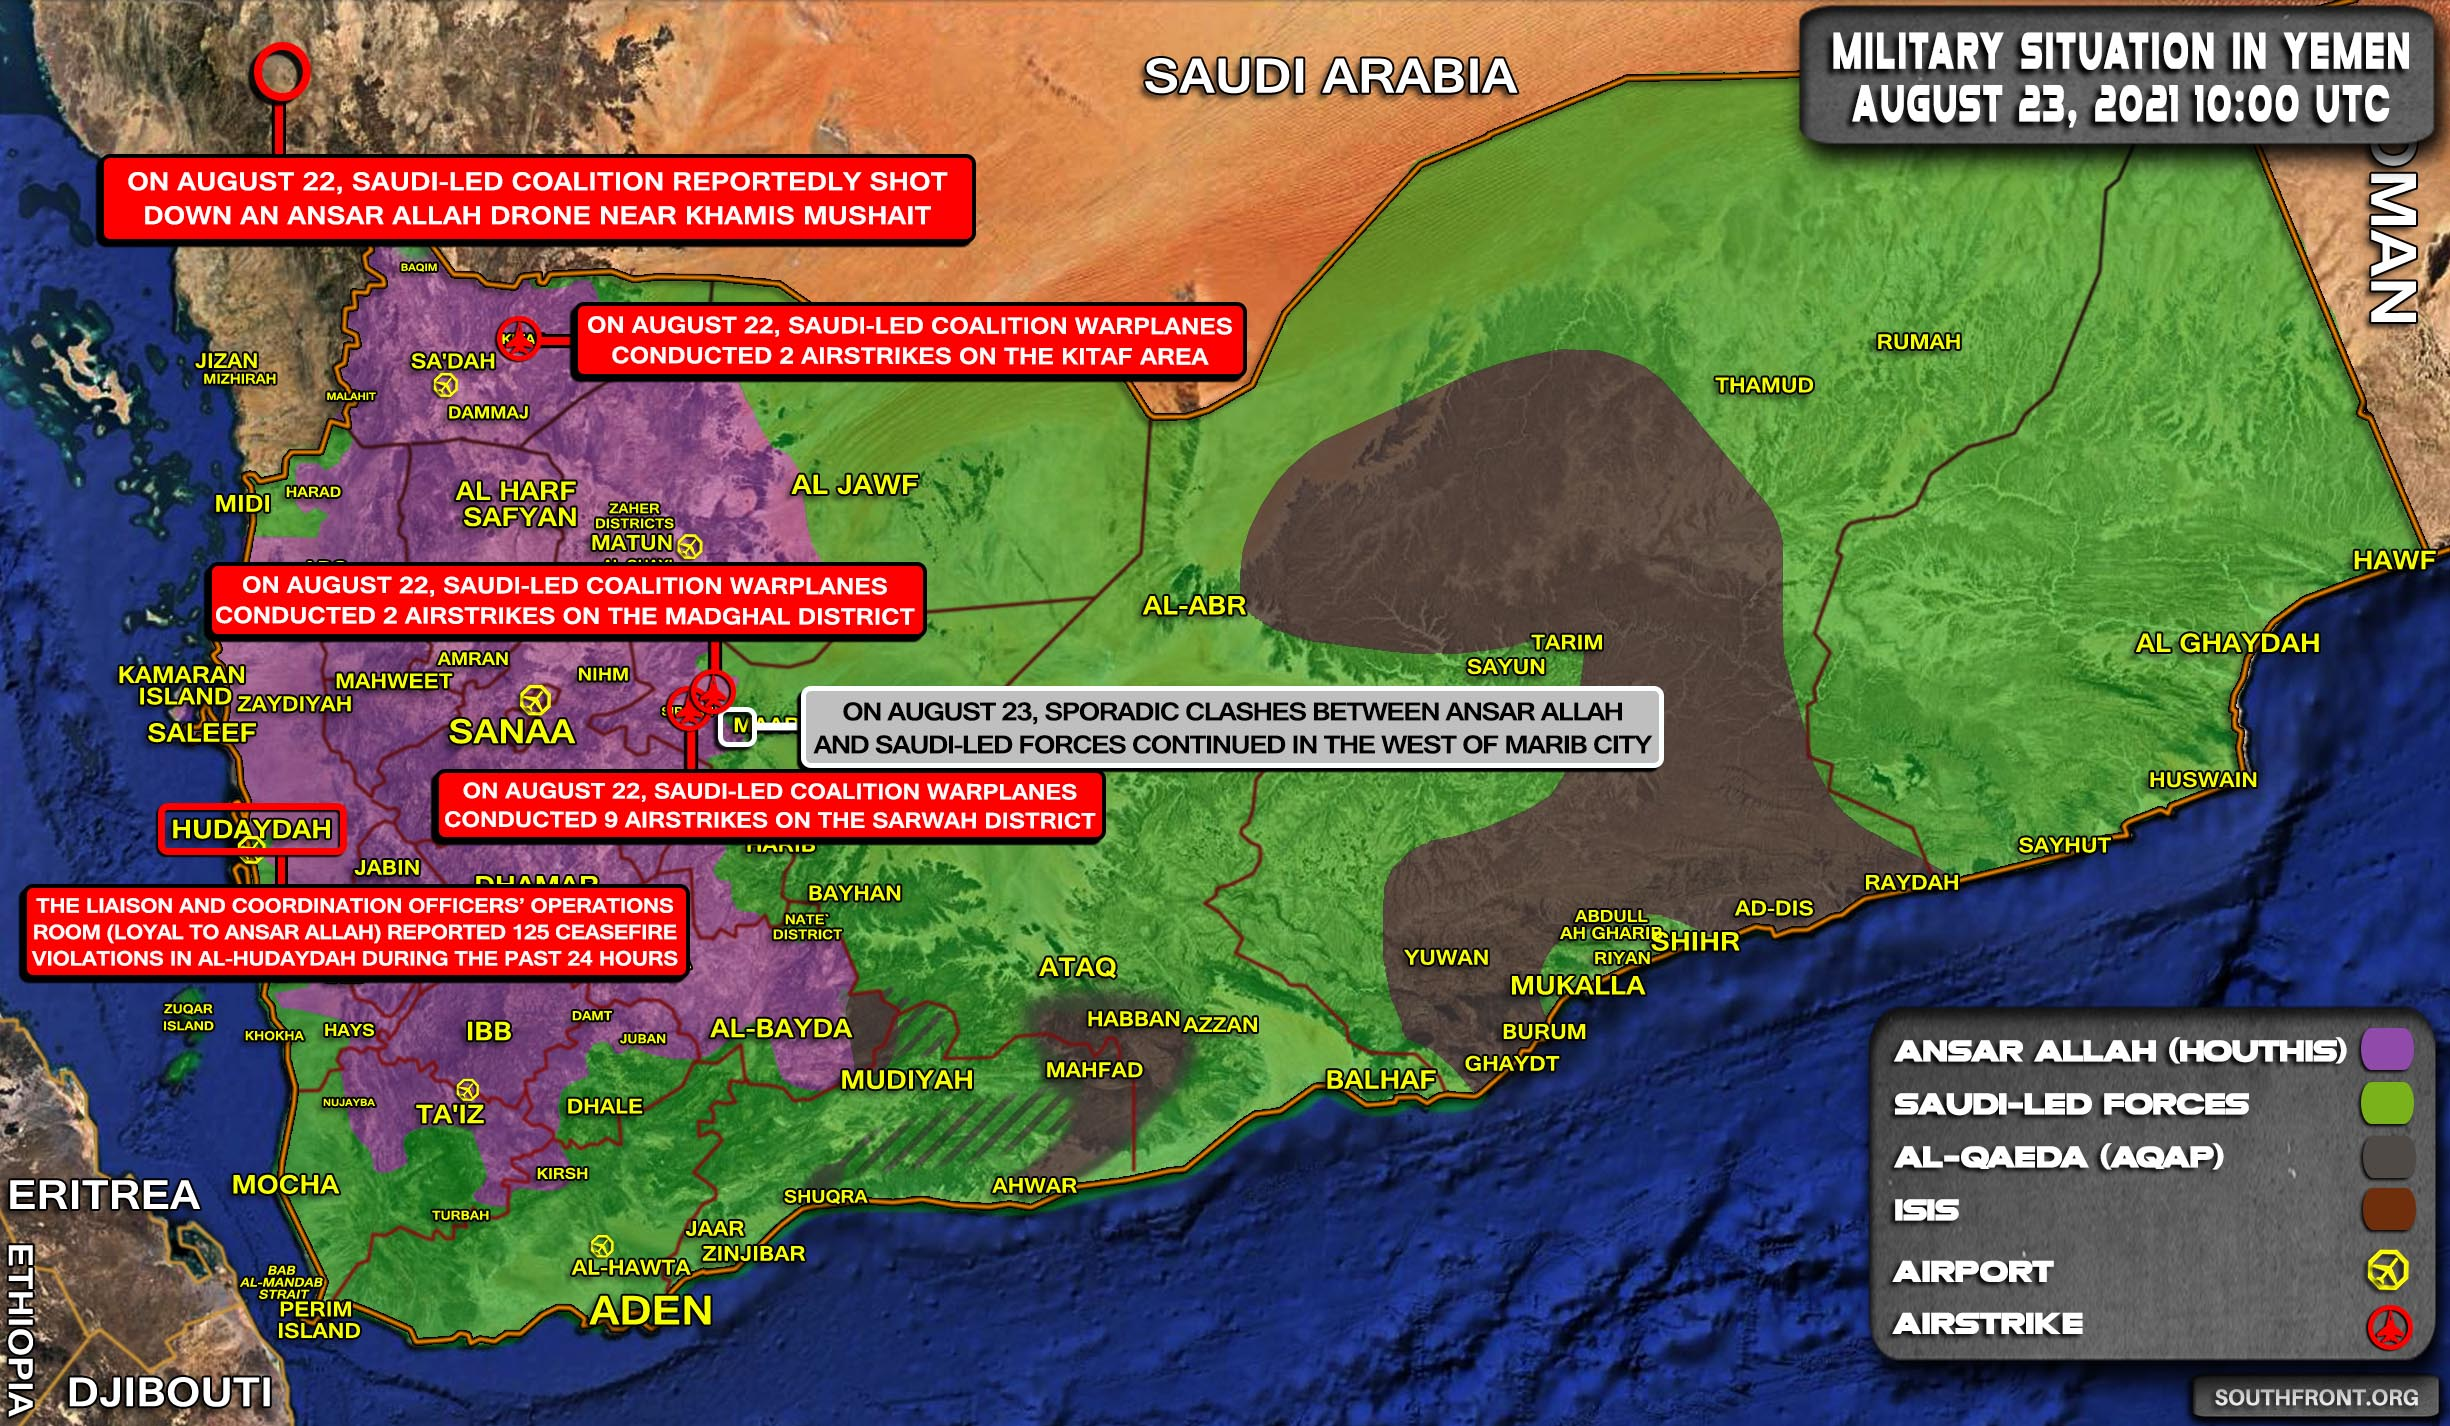 Military Situation In Yemen On August 23, 2021 (Map Update)